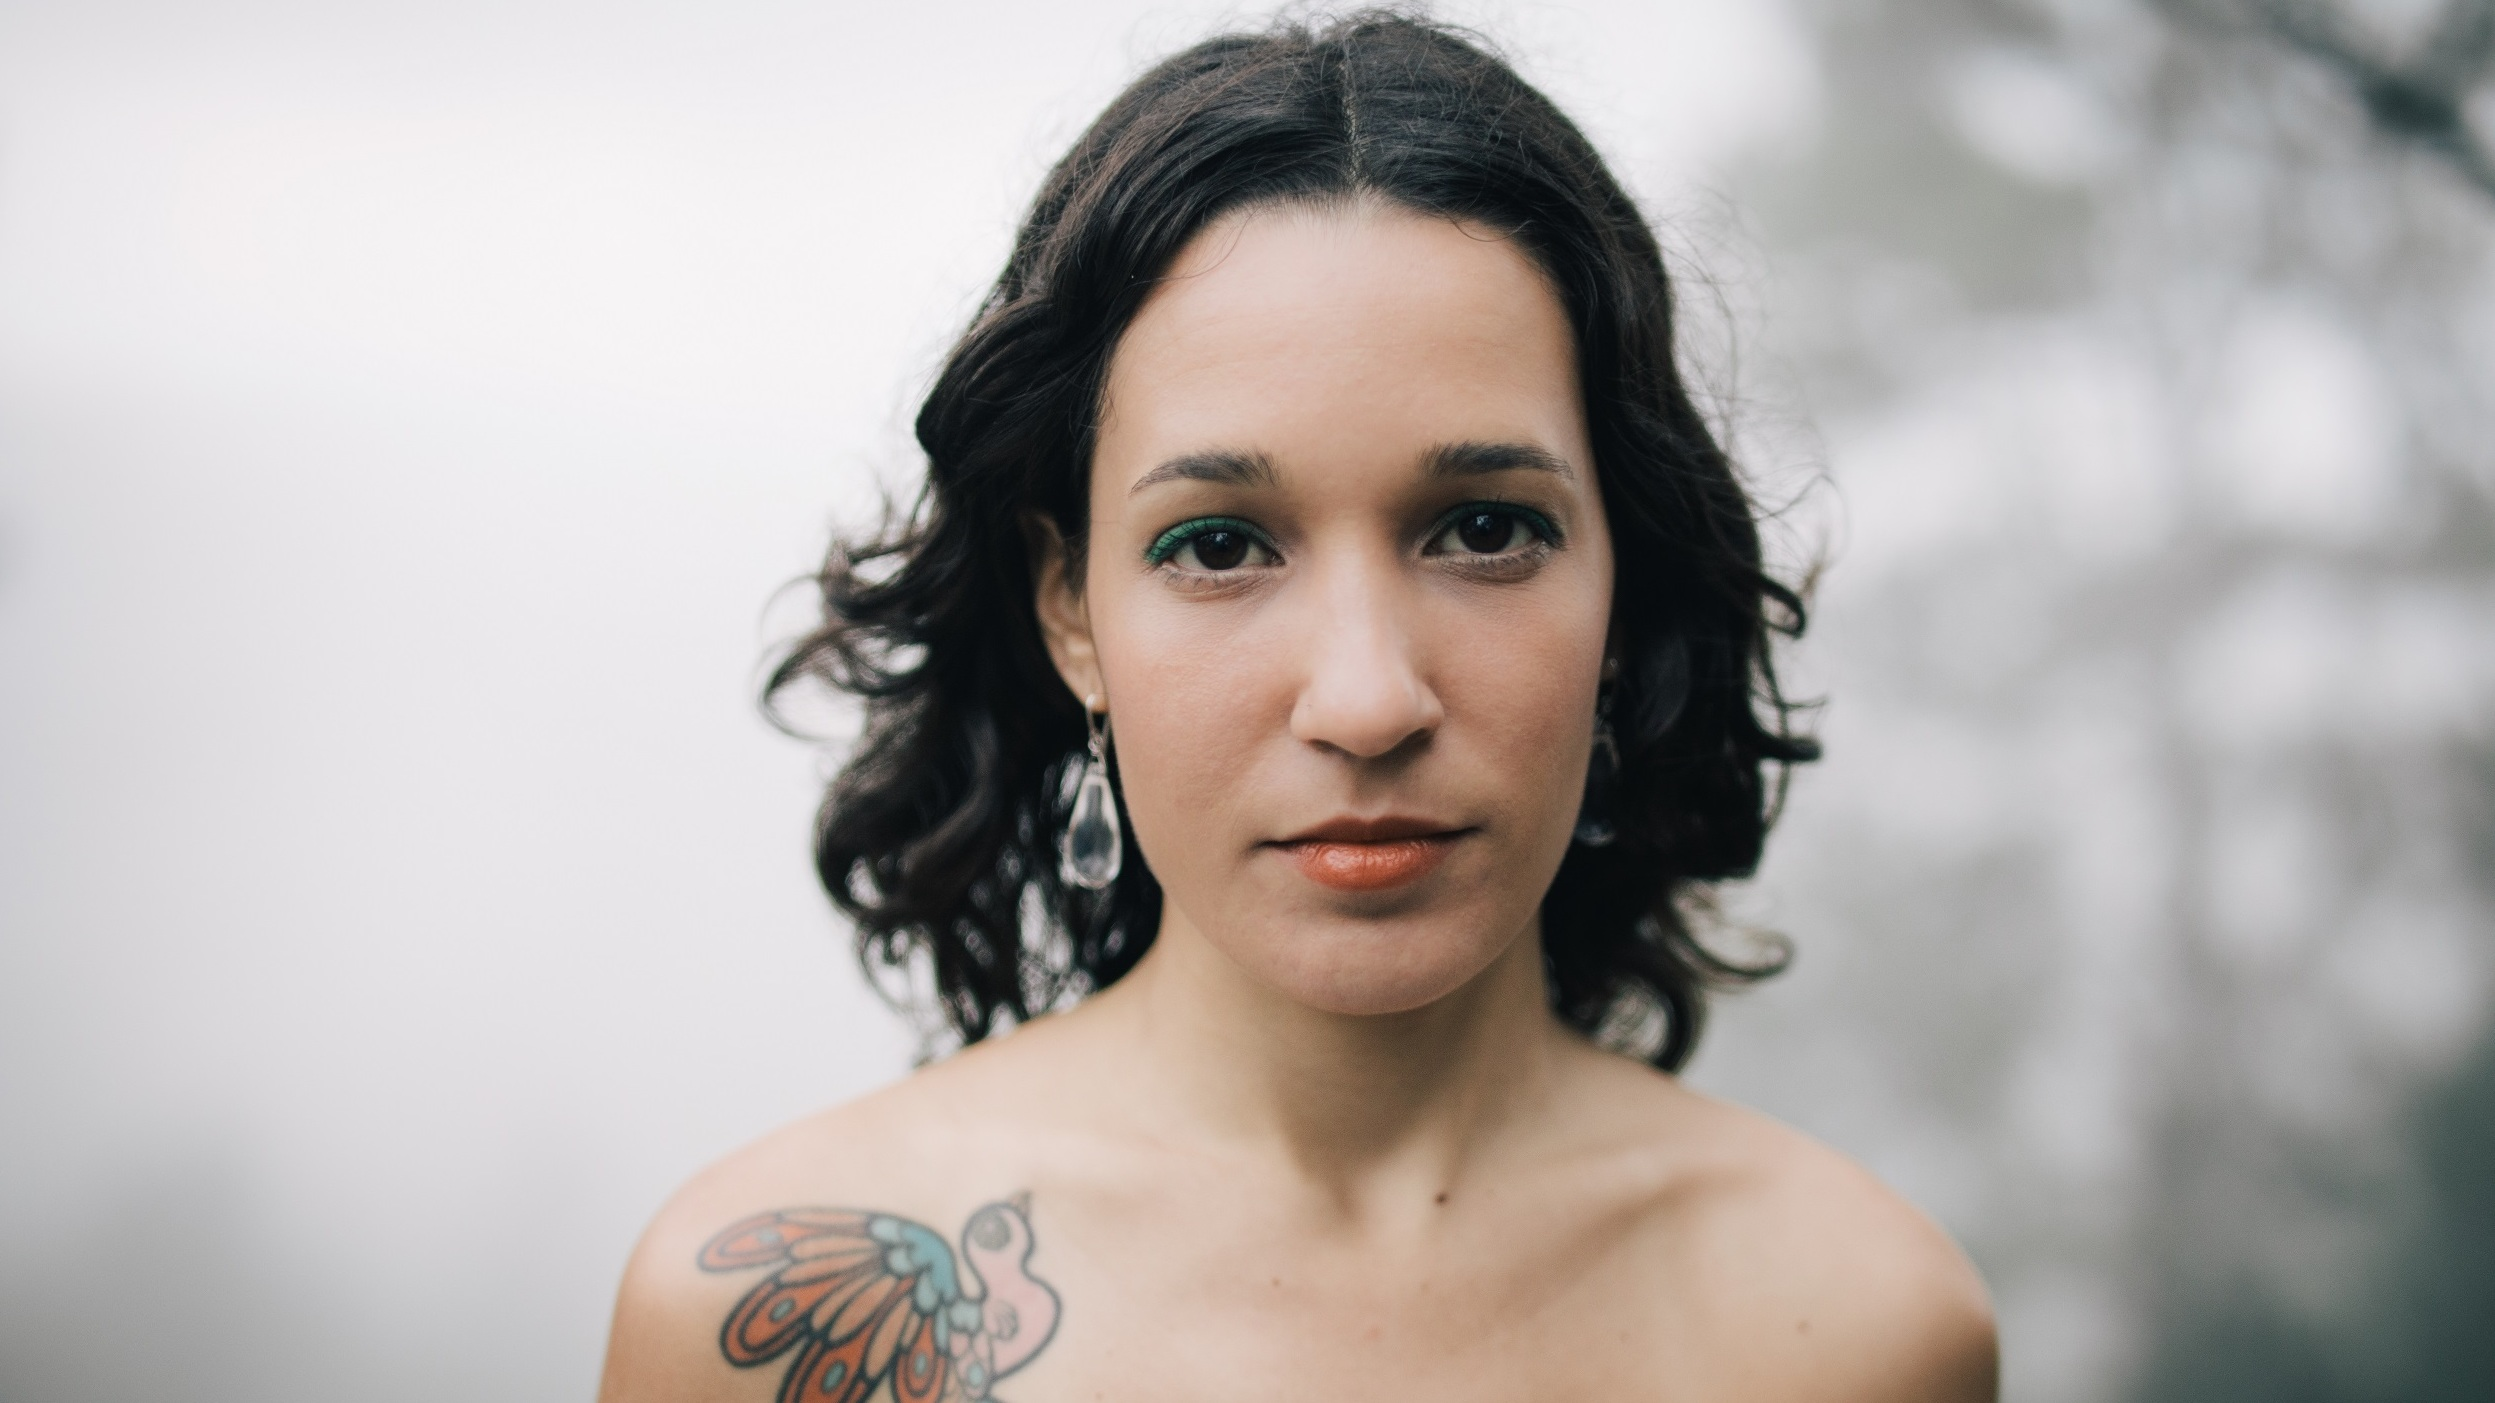 iLe Sings Her Grandmother's Songs And Speaks Out Through Her Music : Alt.Latino : NPR